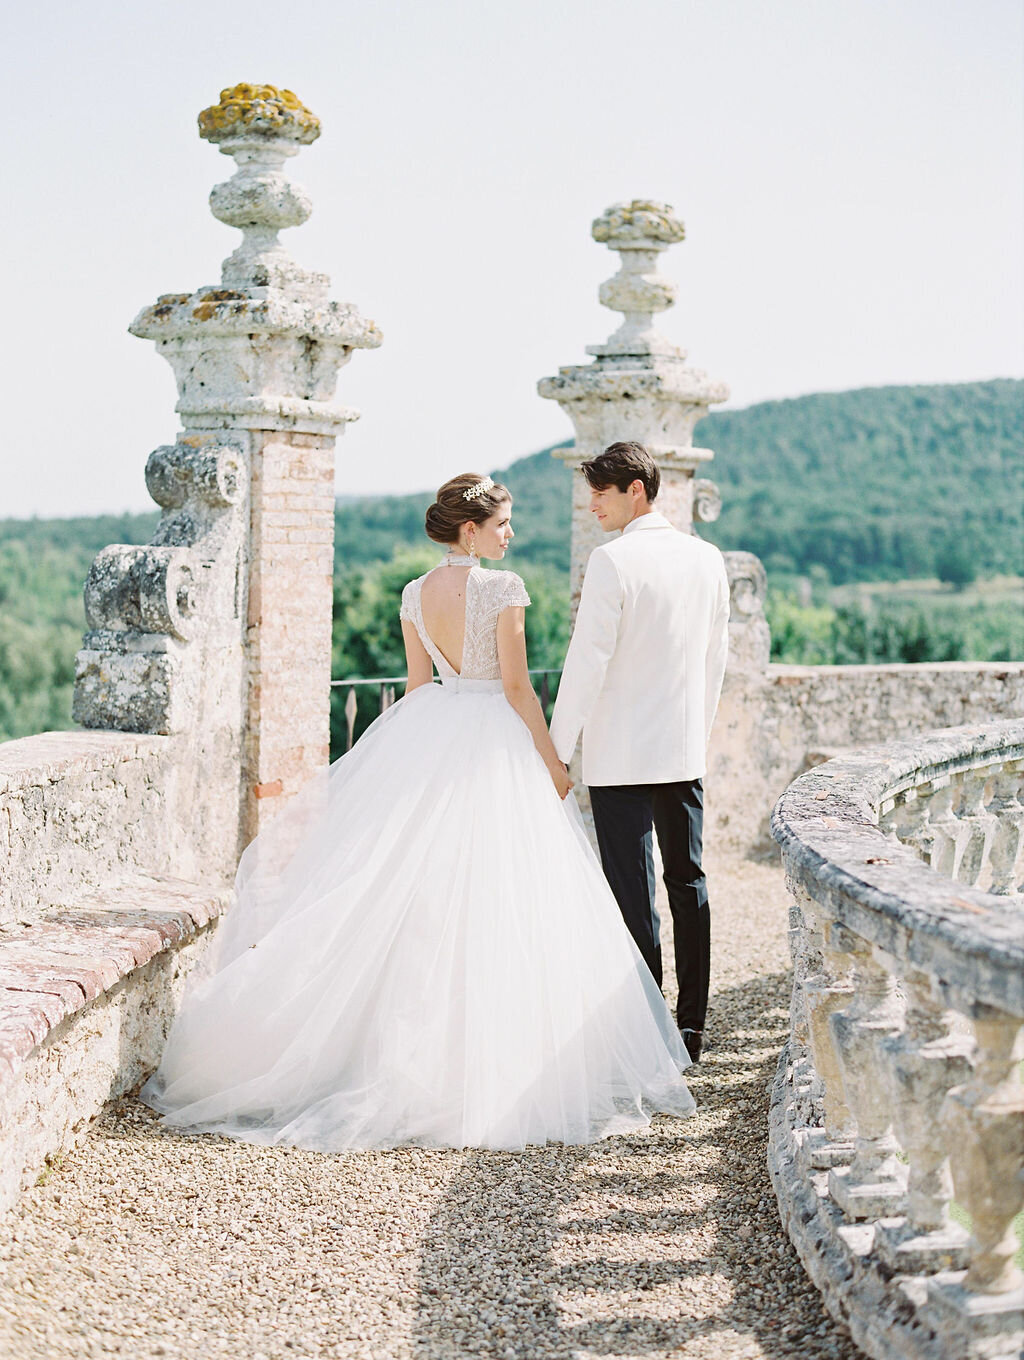 Trine_Juel_hair_and_makeupartist_wedding_Italy_Castello_Di_CelsaQuicksallPhotography_CastelloDiCelsa0310